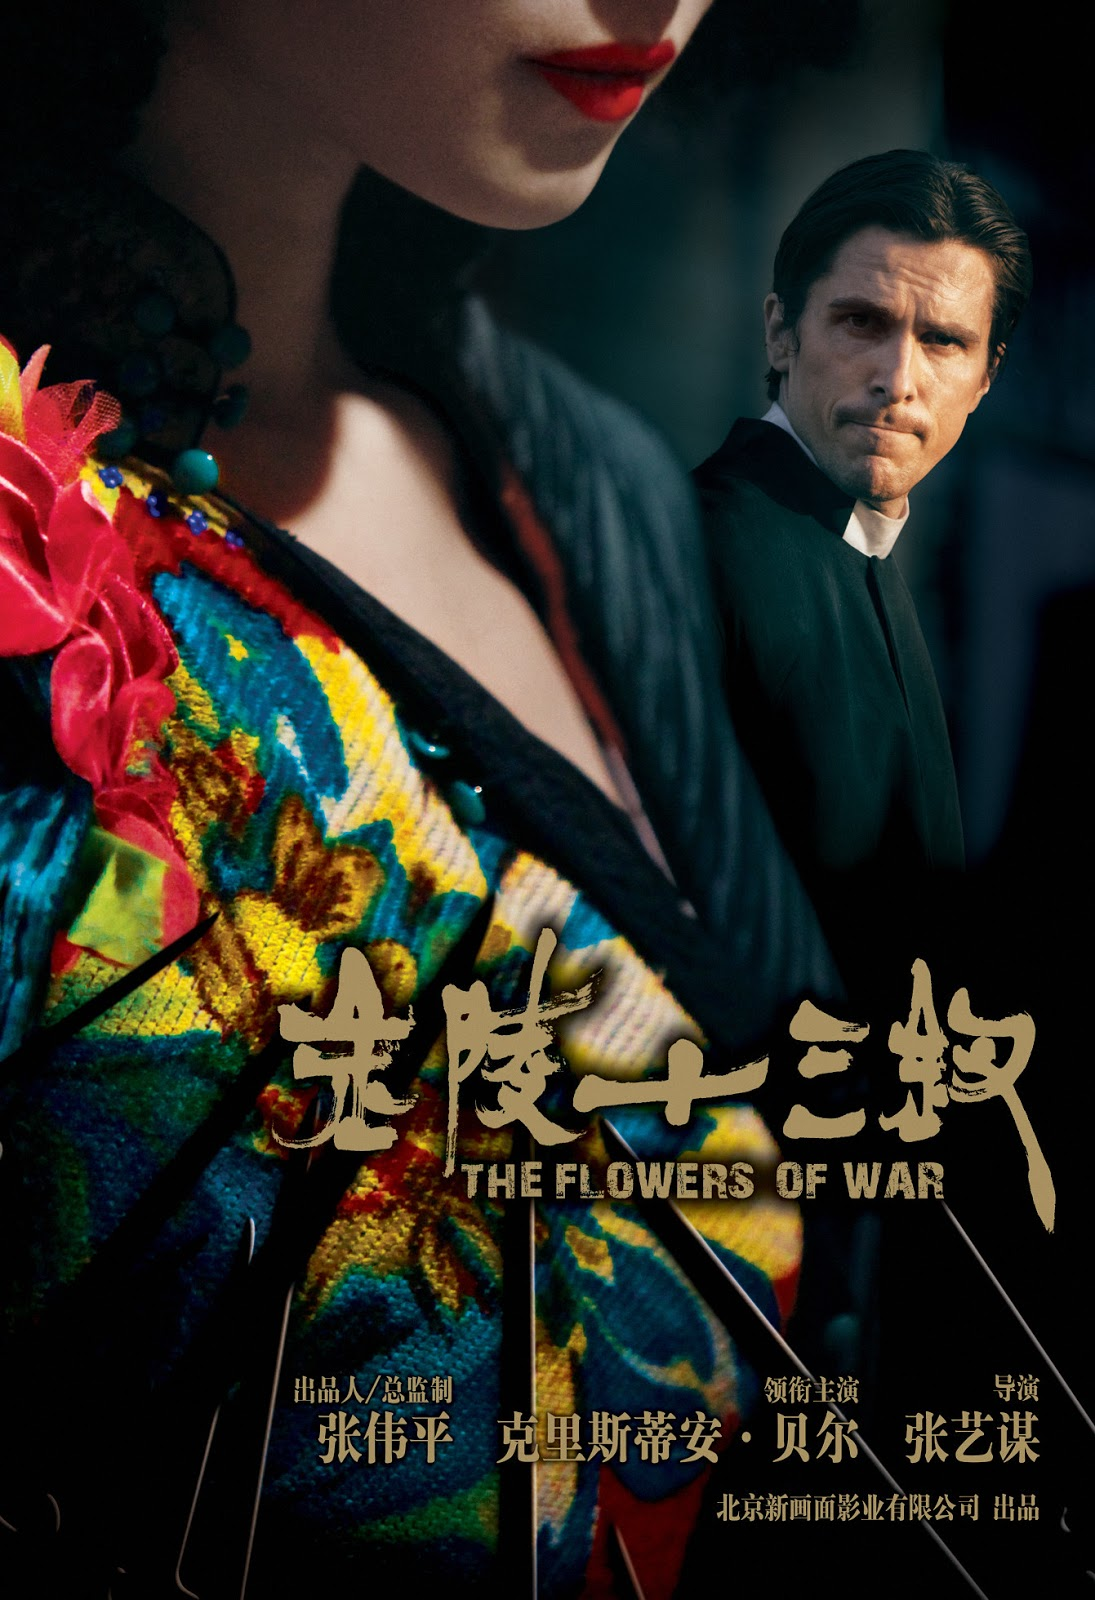 China Submits Zhang Yimou's Christian Bale Flick for Oscar Consideration